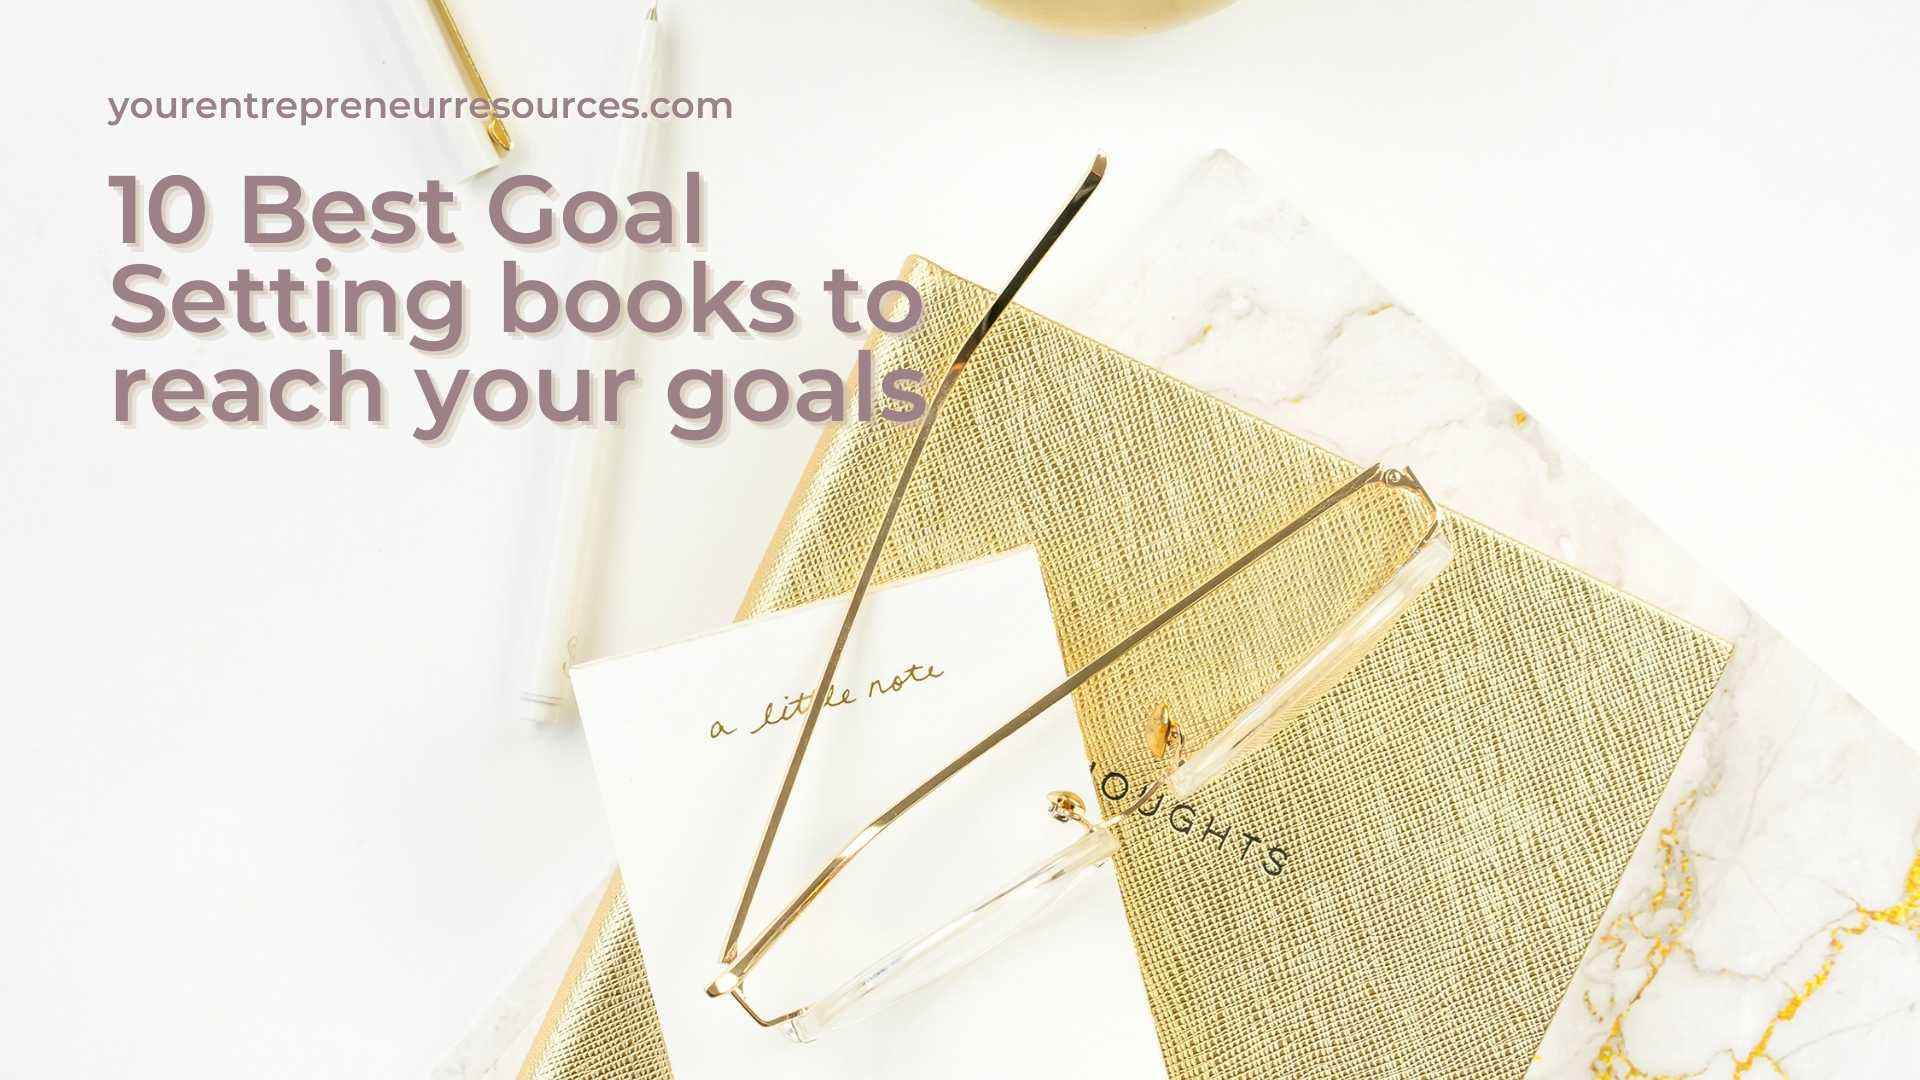 10 Best Goal Setting books to reach your goals in 2021